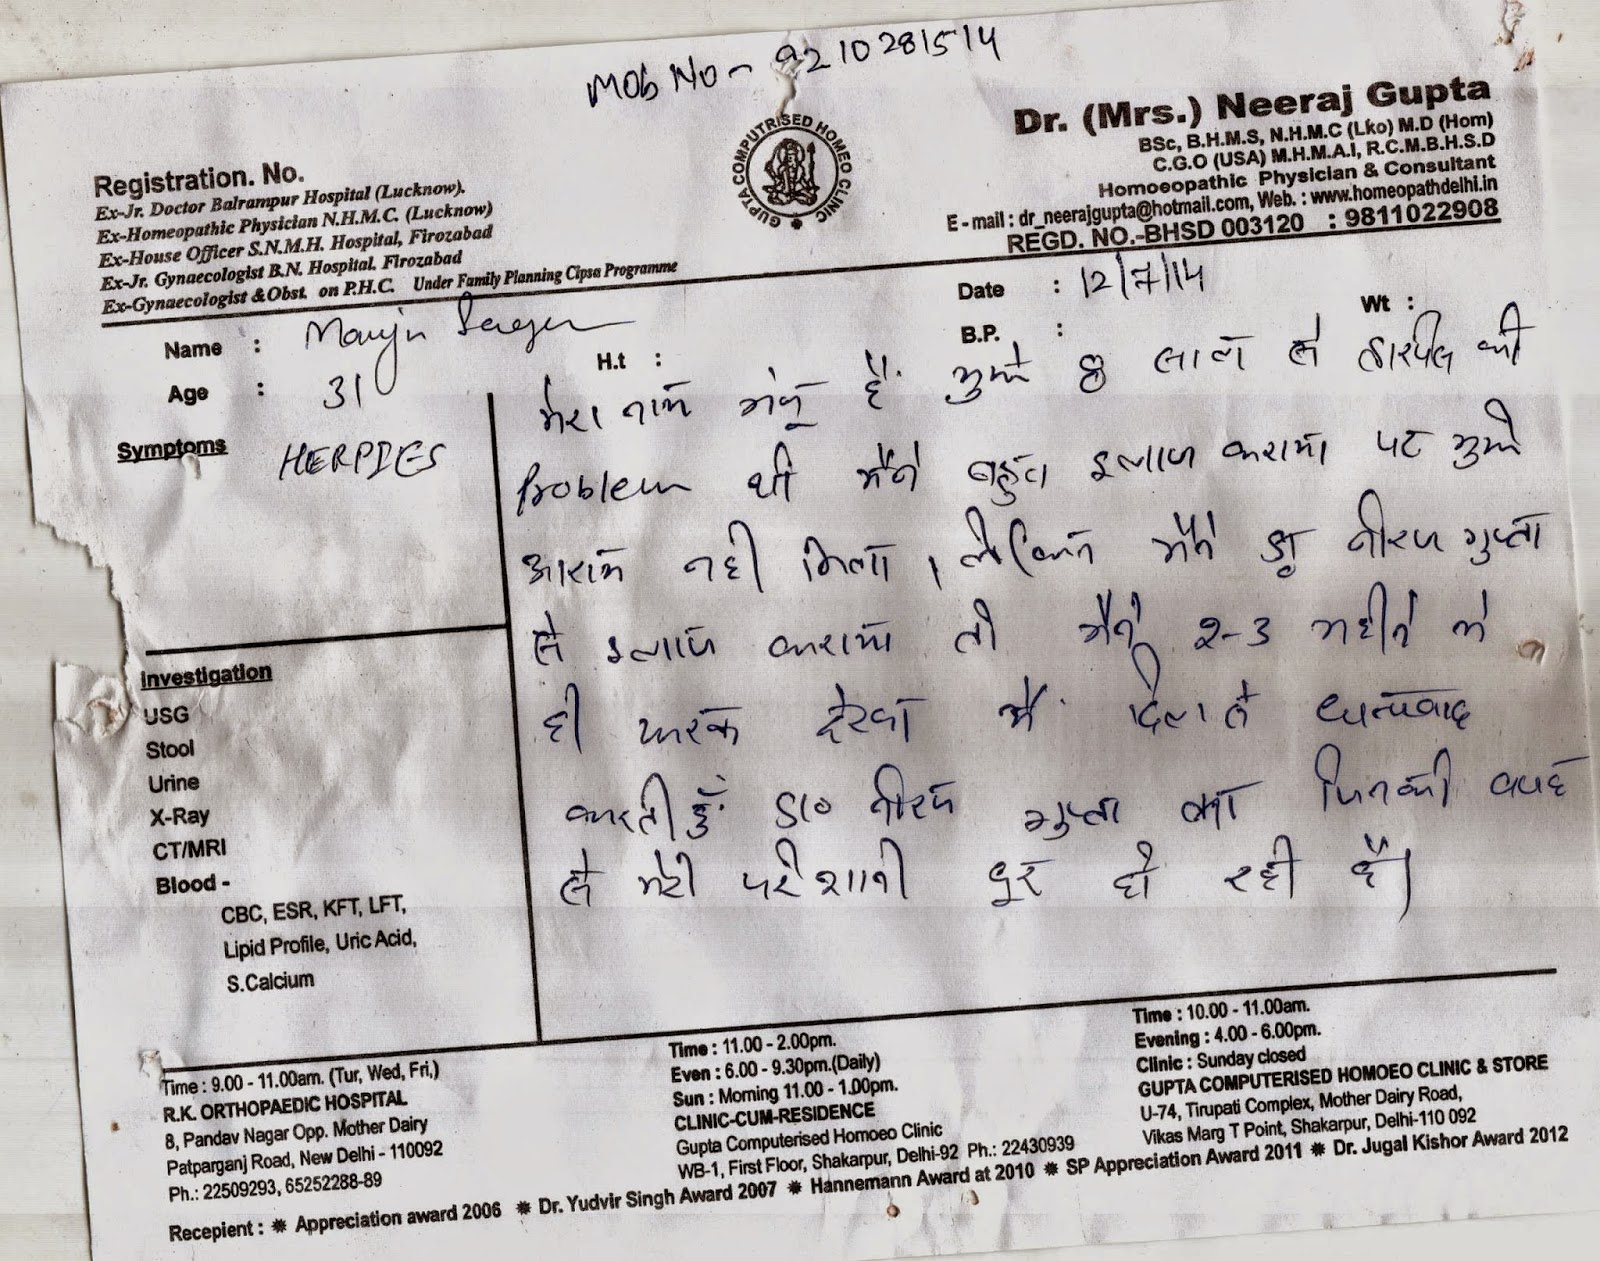 EXPERT HOMOEOPATH NEAR ME: Herpes is cured by homoeopathy within 2 month